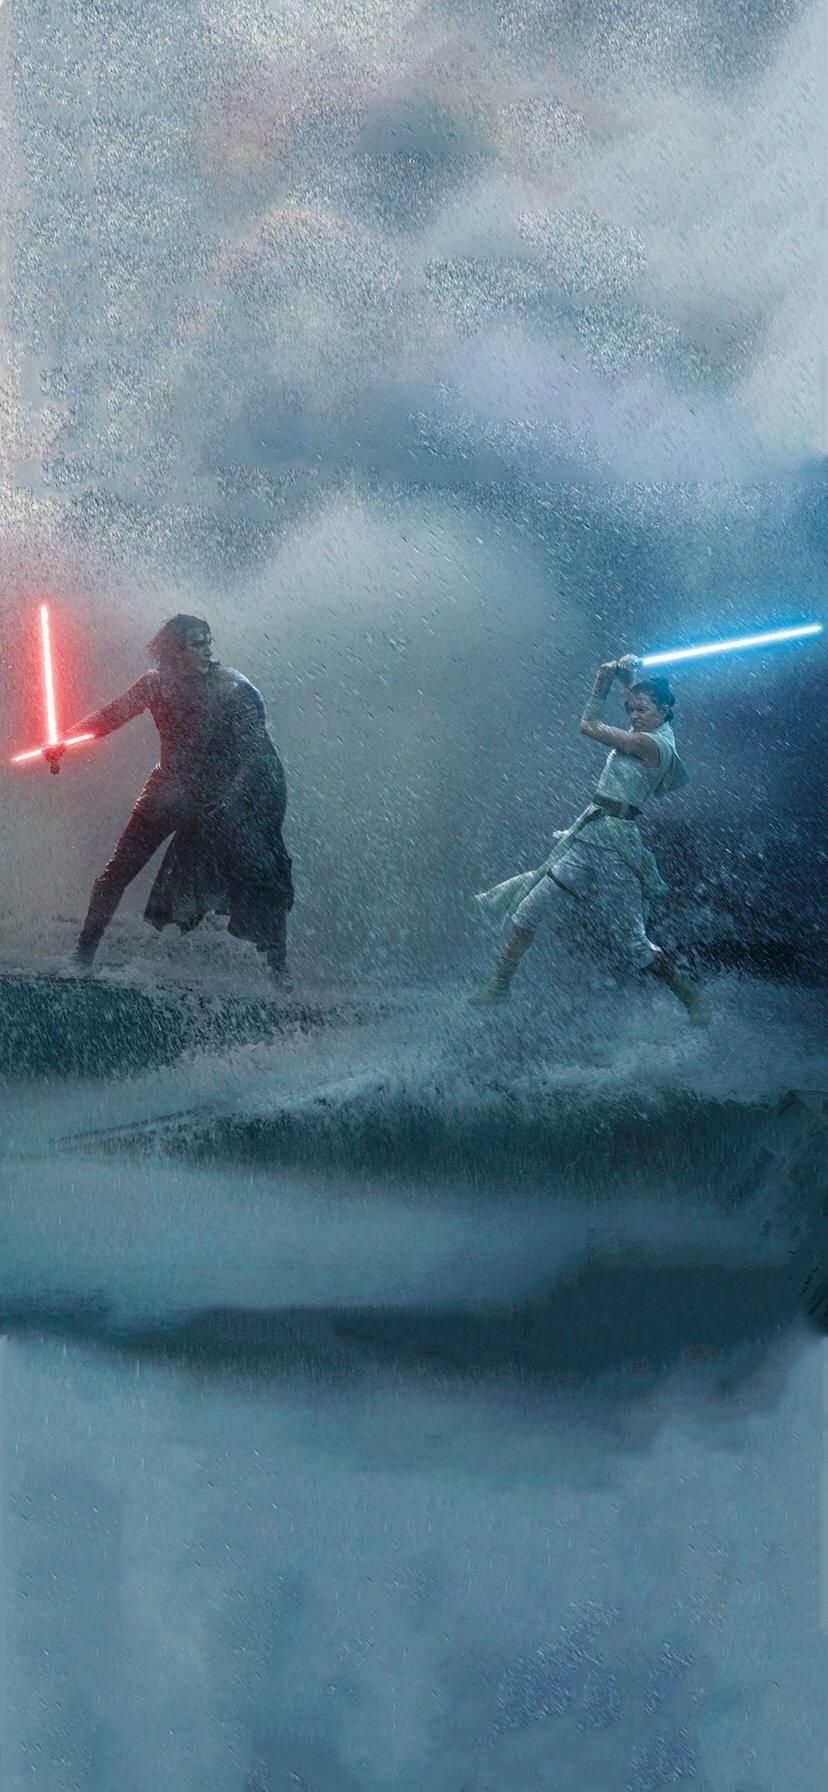 Here Is That Rey And Kylo Ren Fighting In The Rain Wallpaper Star Wars Background Star Wars Wallpaper Iphone Star Wars Wallpaper